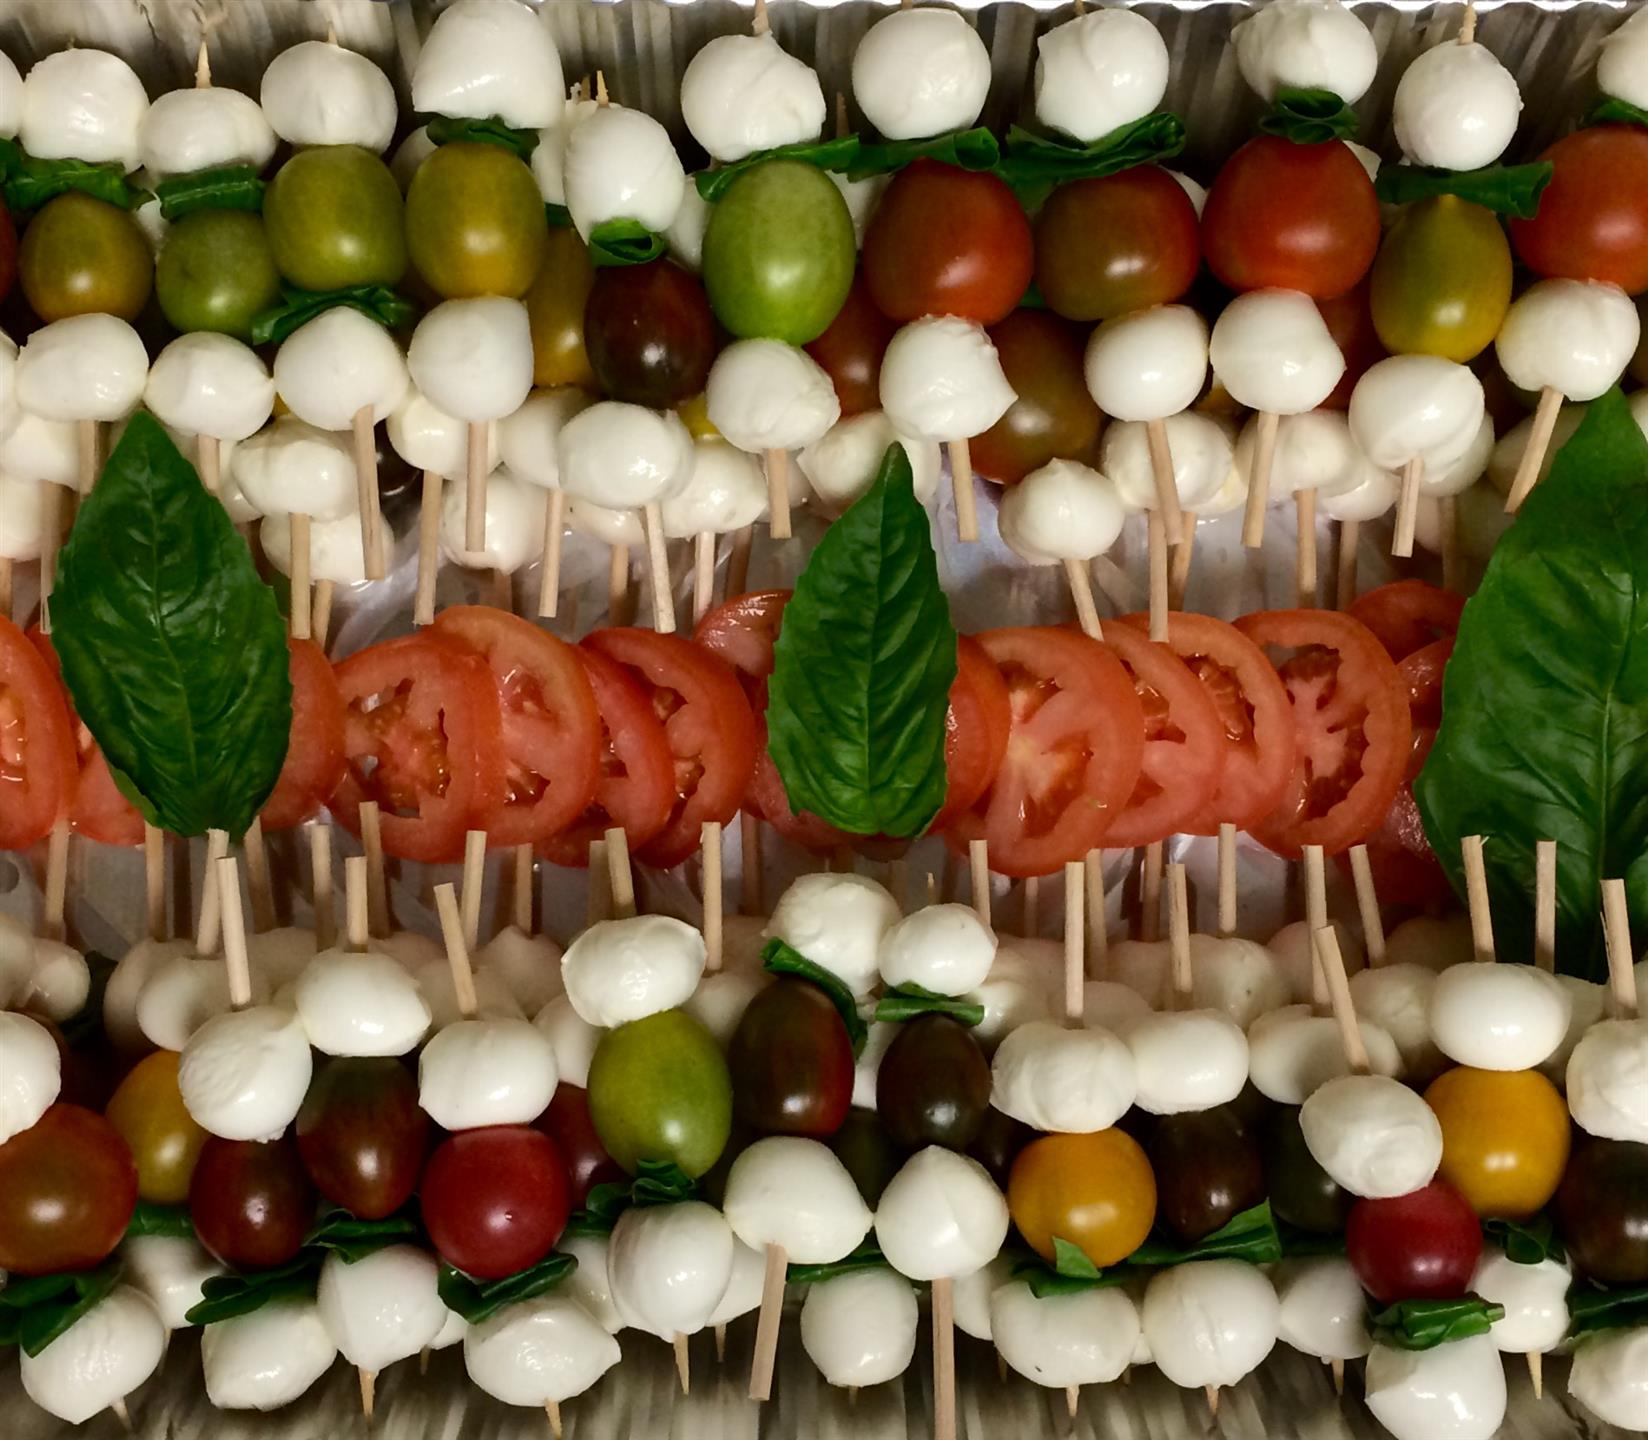 catering display of tomatoes and mozzarella on skewers topped with basil leaves